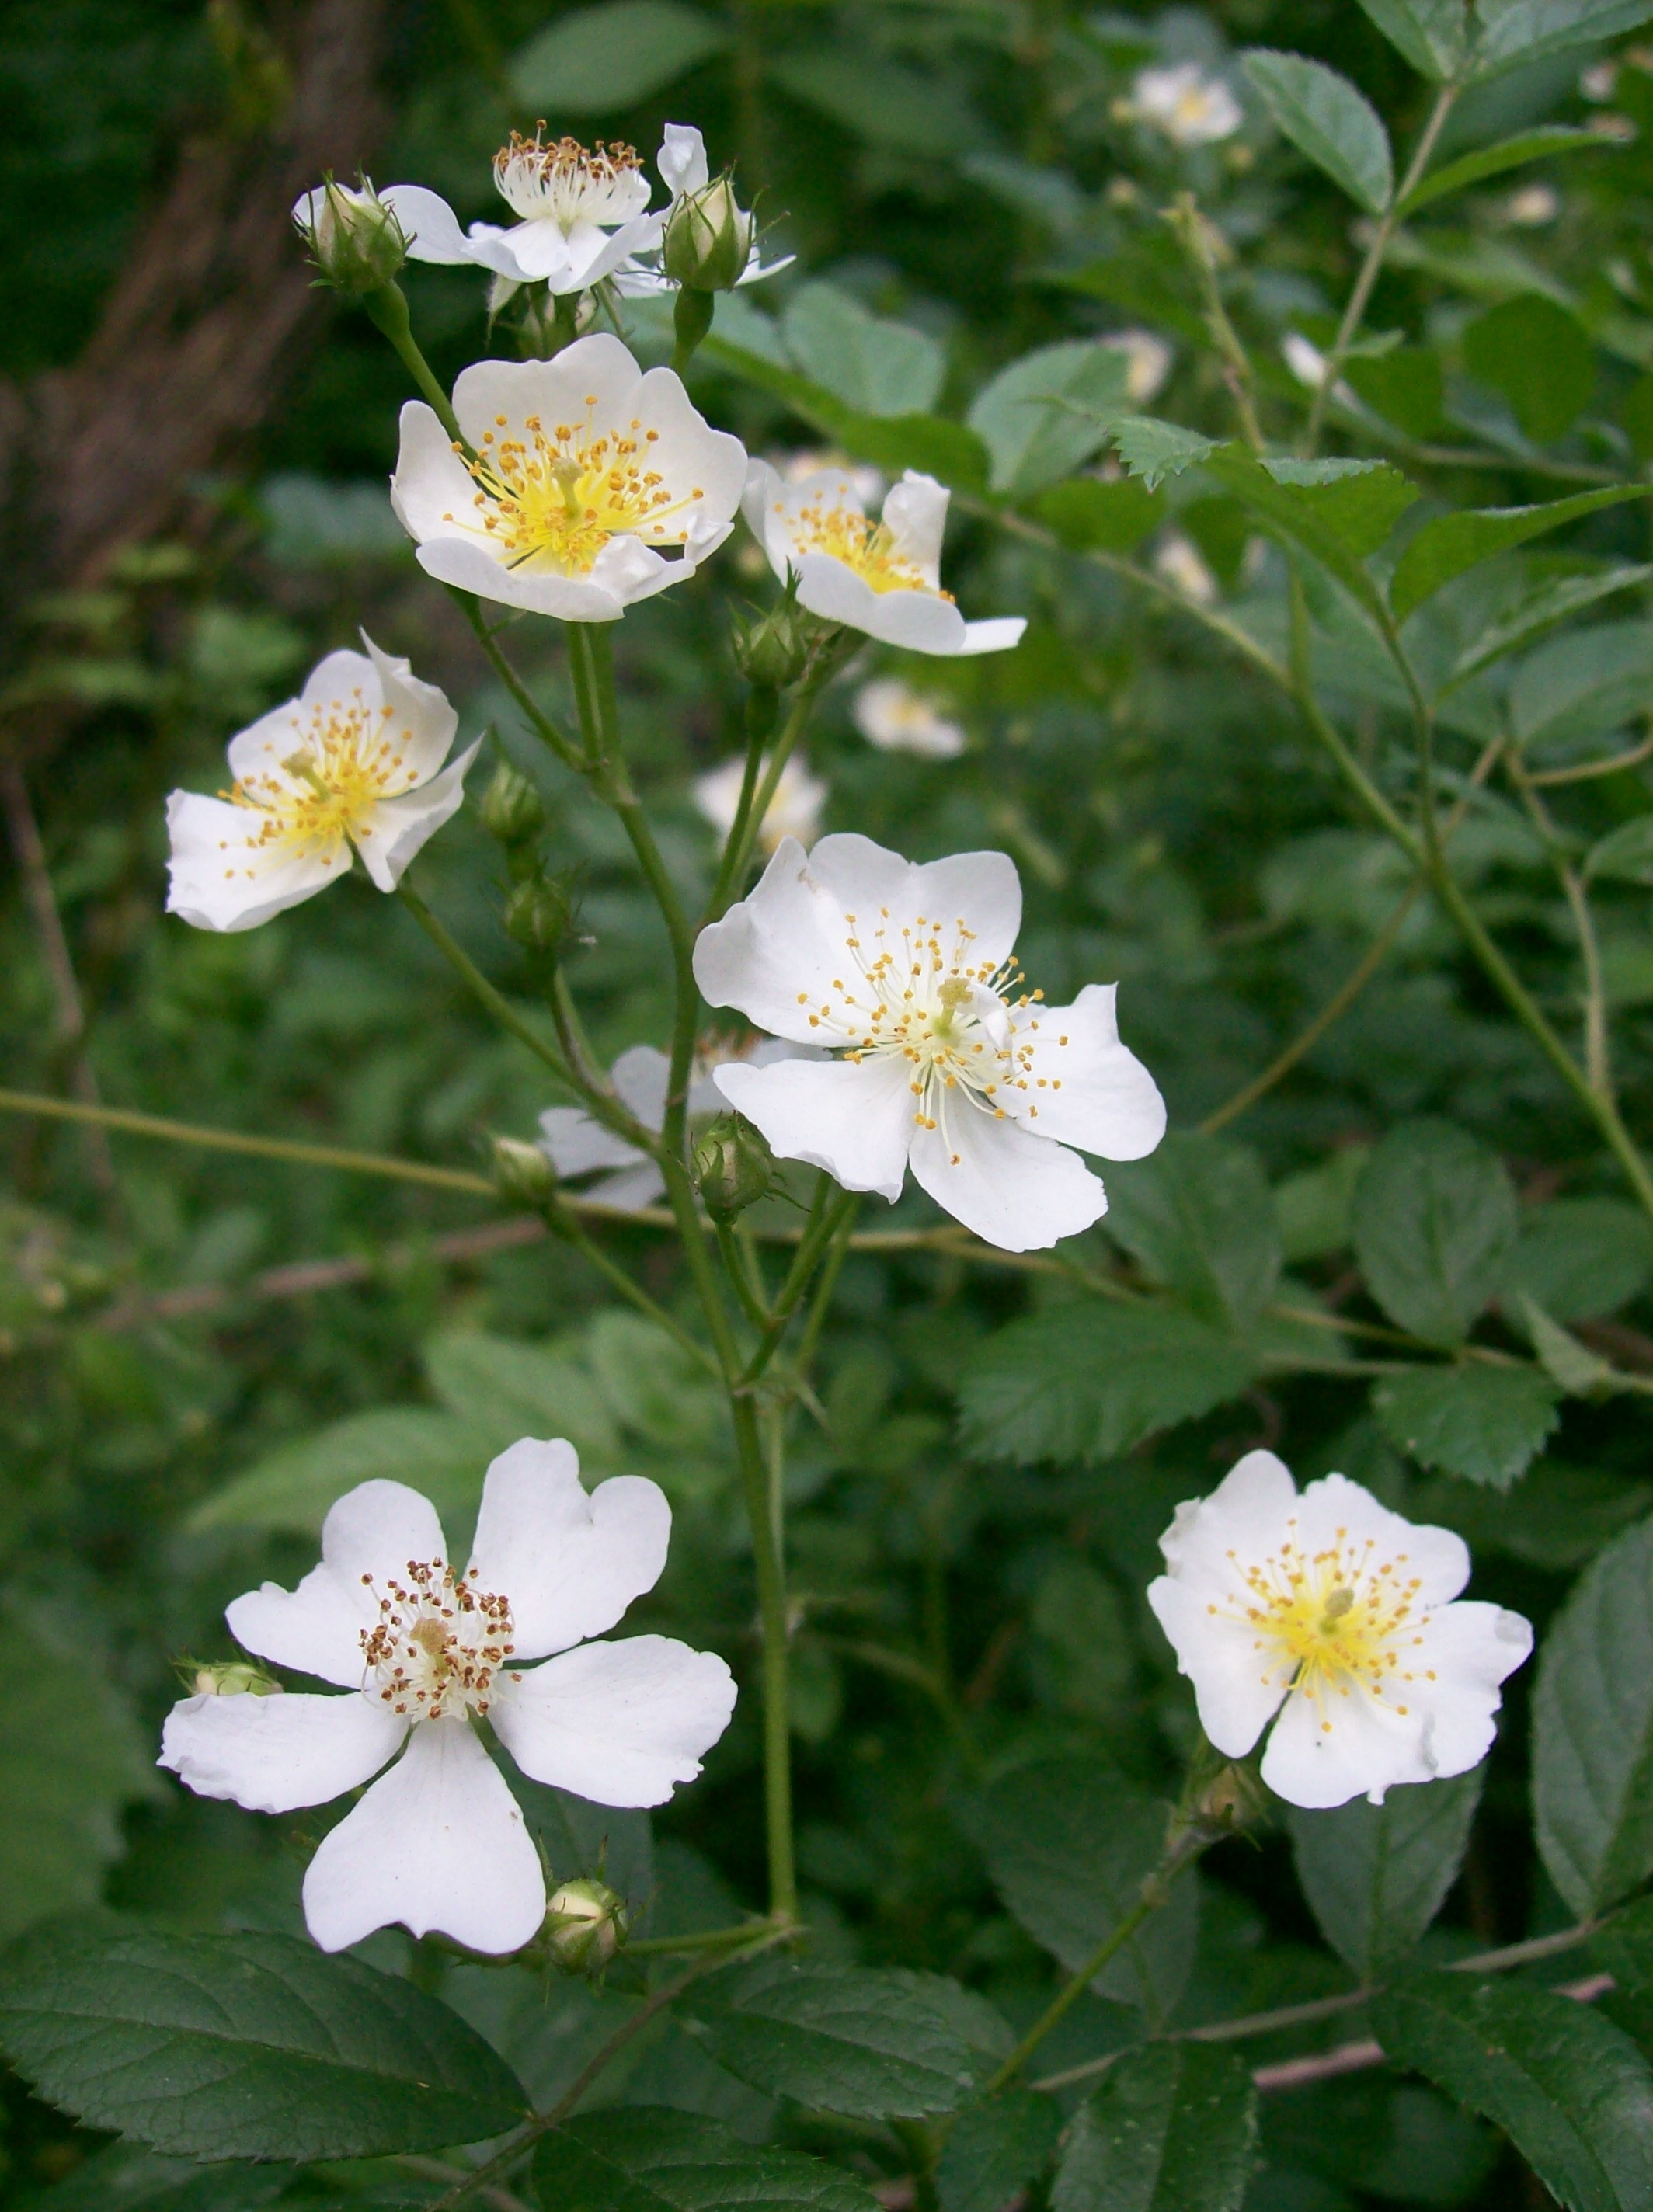 Plant With Small White Flowers And Thorns Best Image Of Flower